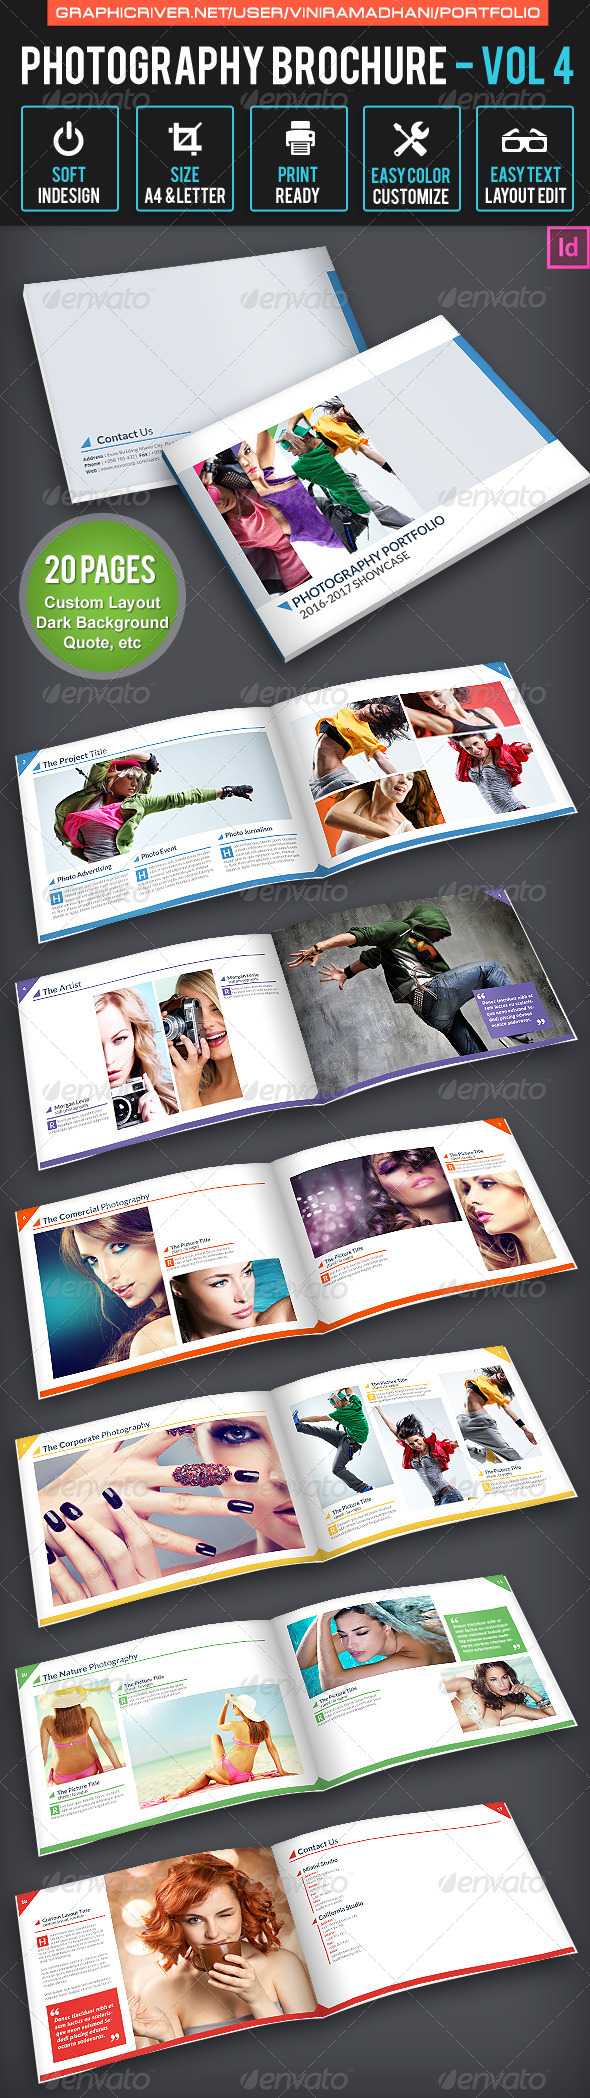 GraphicRiver Photography Brochure Volume 4 6532409